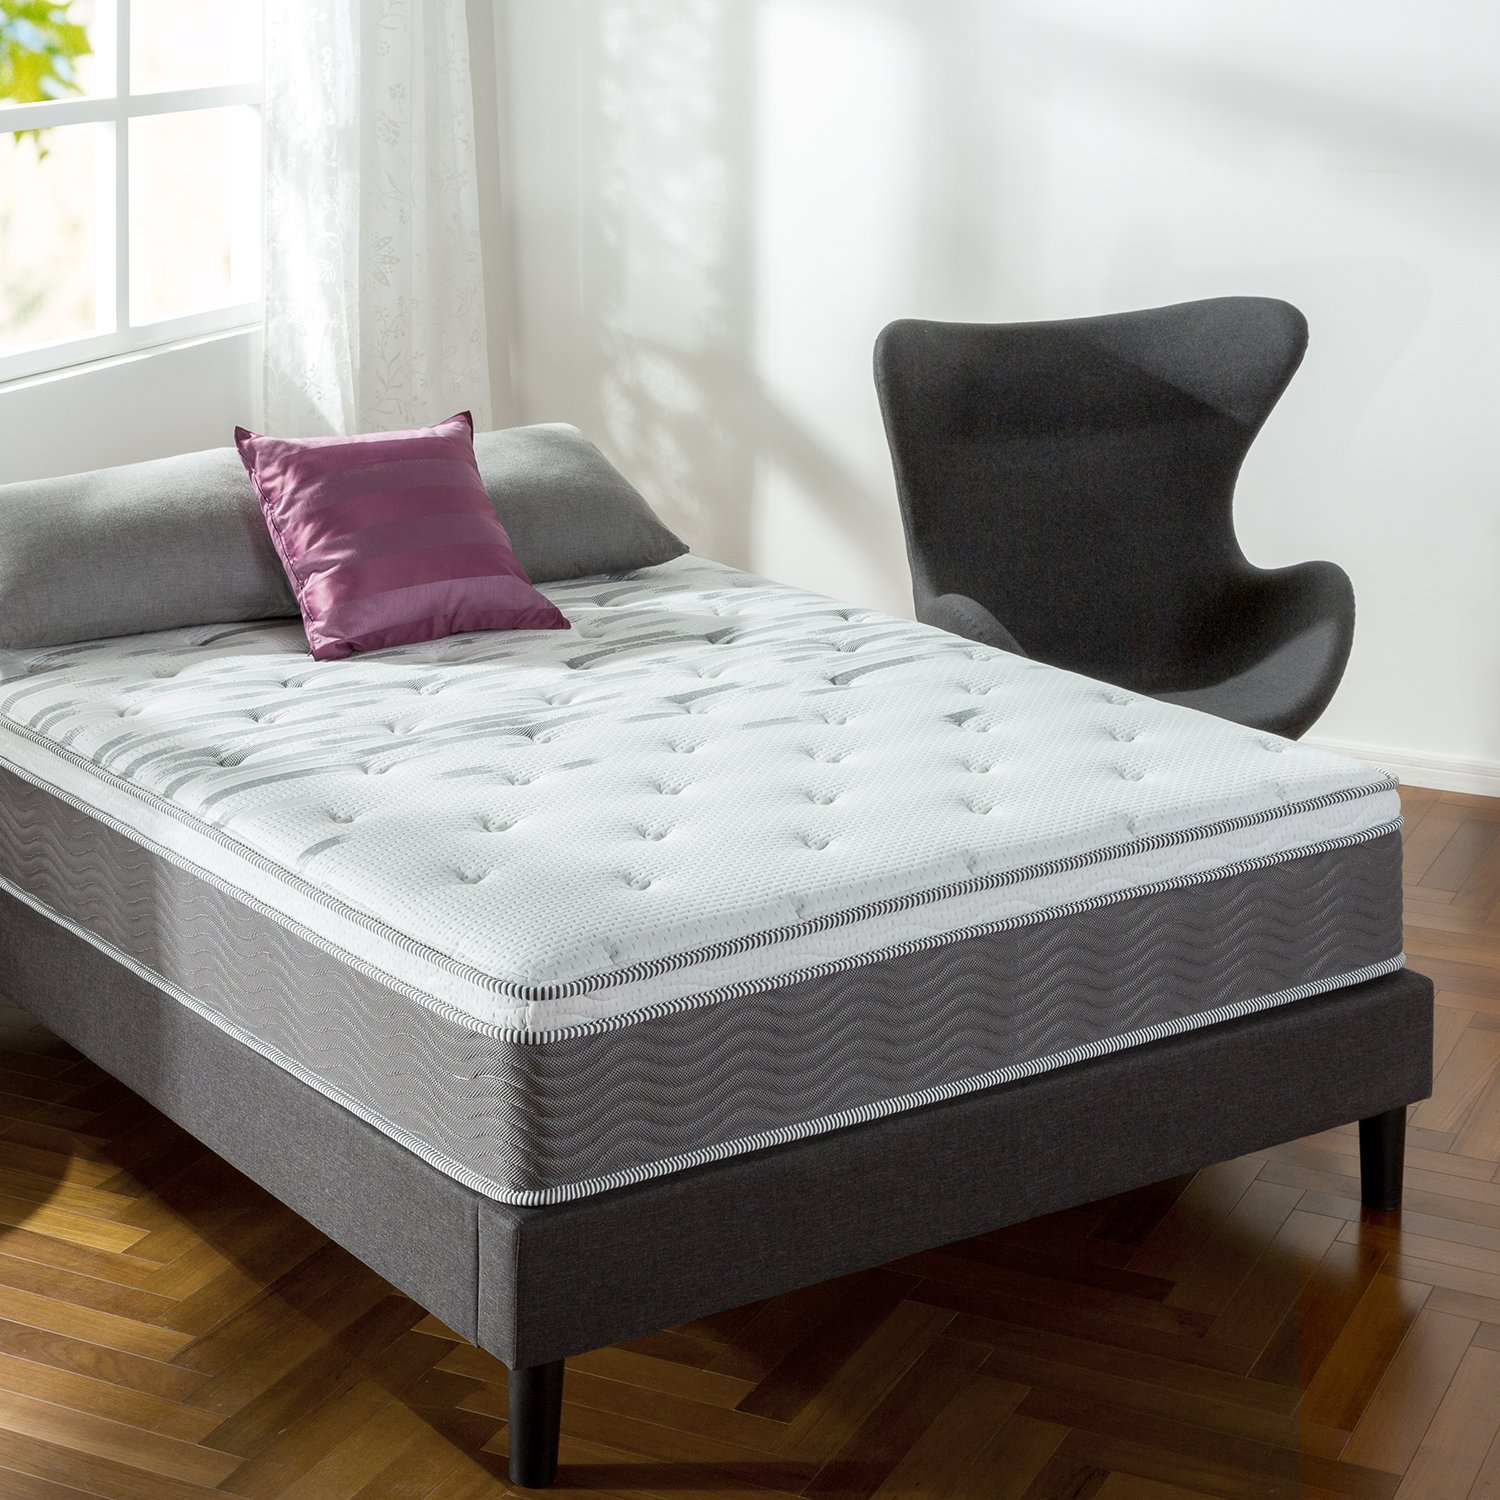 queen mattress and box spring. Zinus Extra Firm ICoil 12 Inch Support Plus Mattress, Queen Mattress And Box Spring P